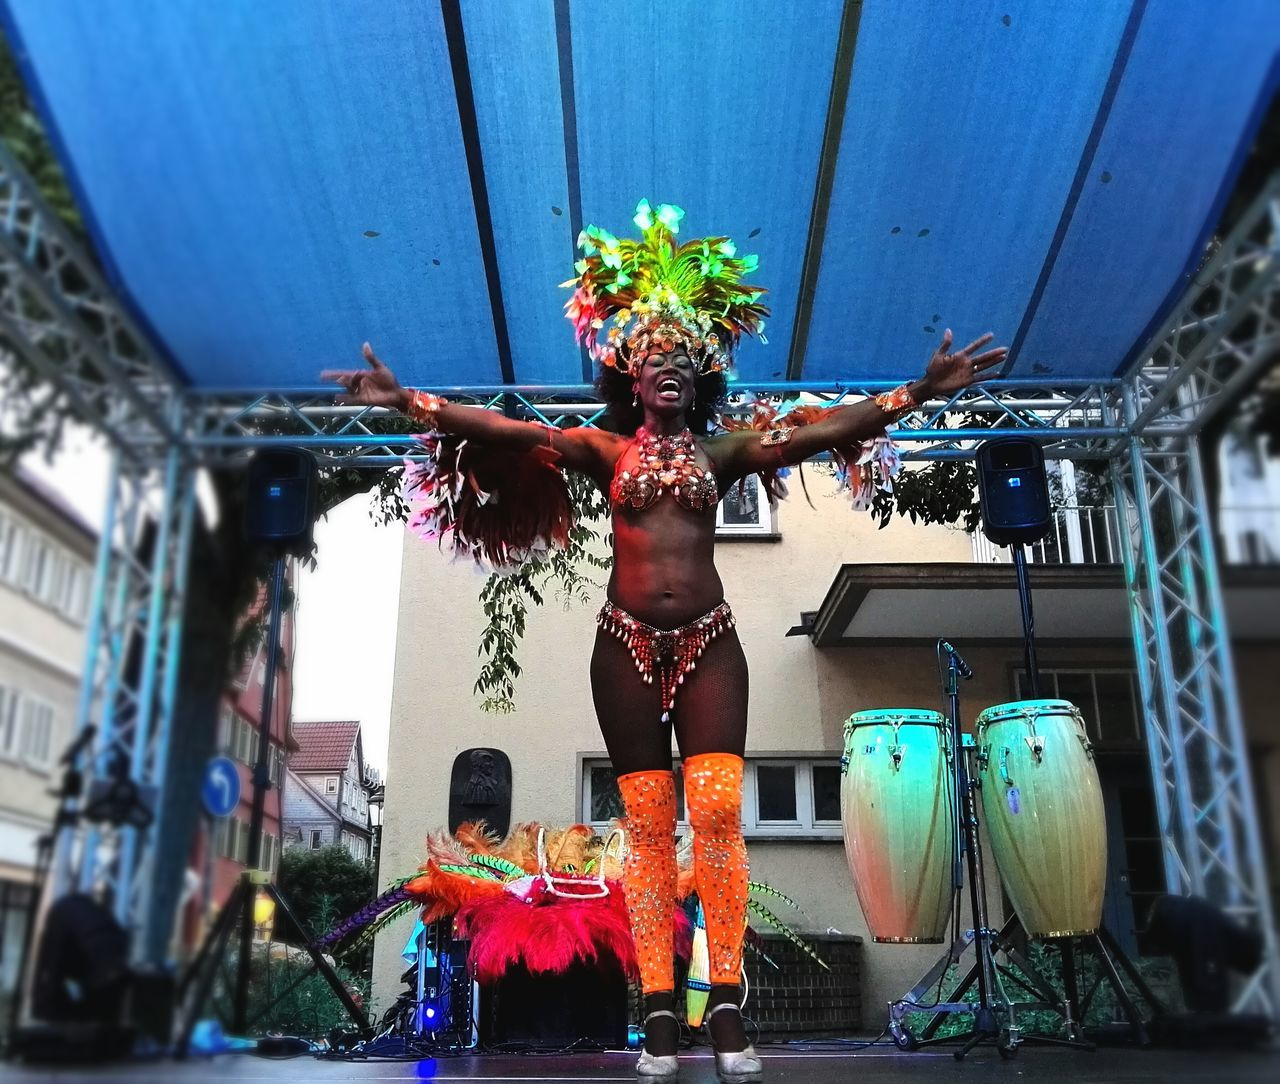 celebration, statue, performance, arts culture and entertainment, carnival, real people, day, outdoors